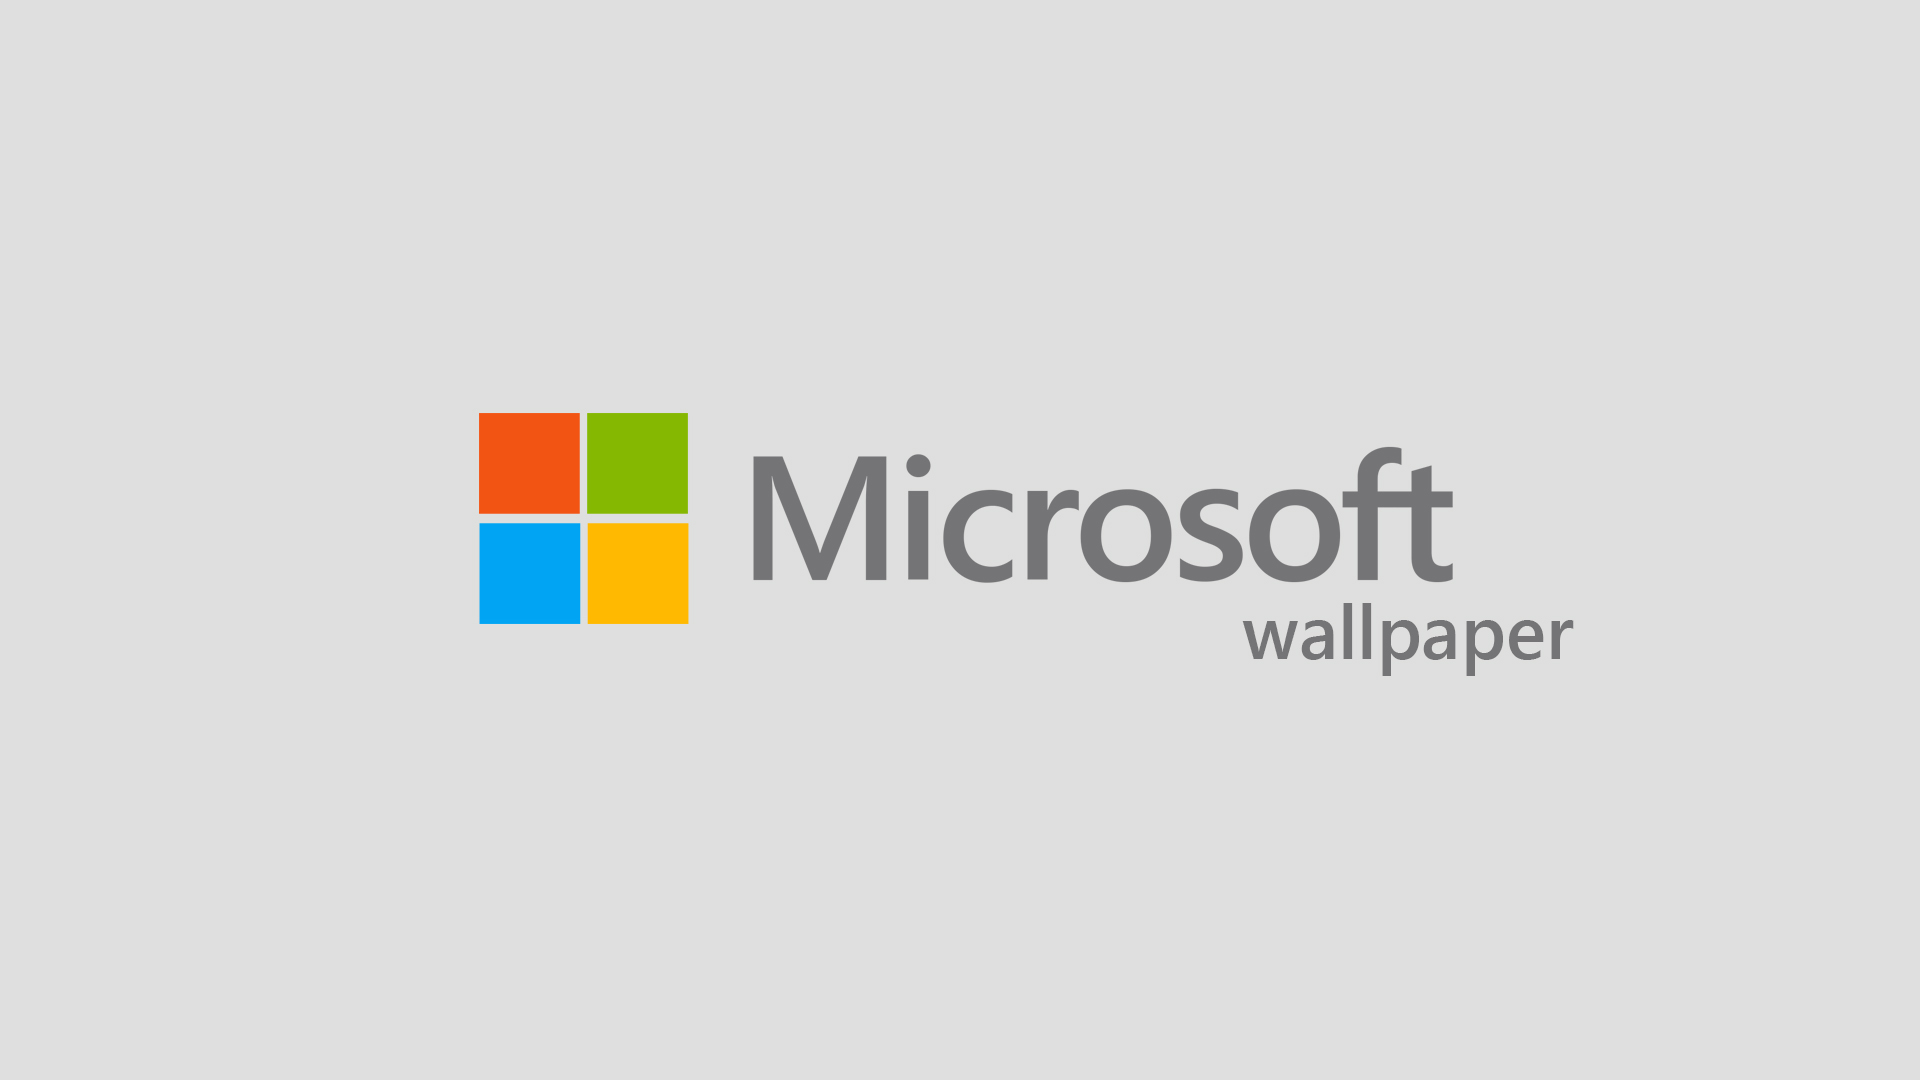 The New Microsoft Logo HD Desktop Mobile Wallpaper Background   9walls 1920x1080